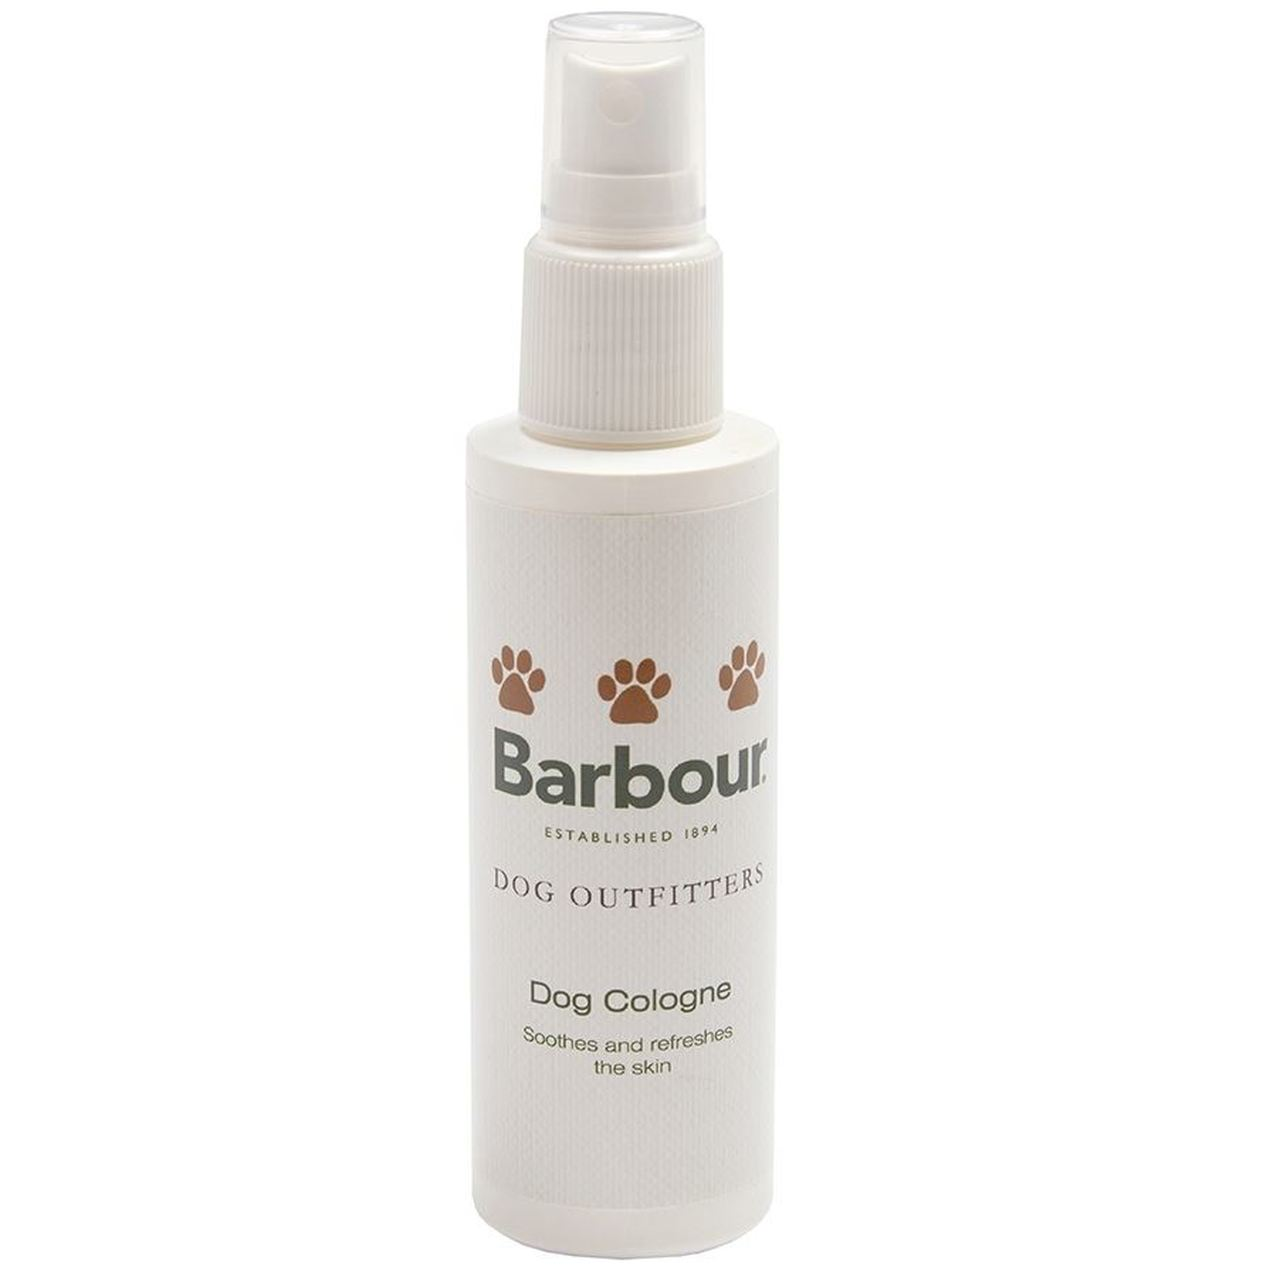 Dog Cologne - Barbour